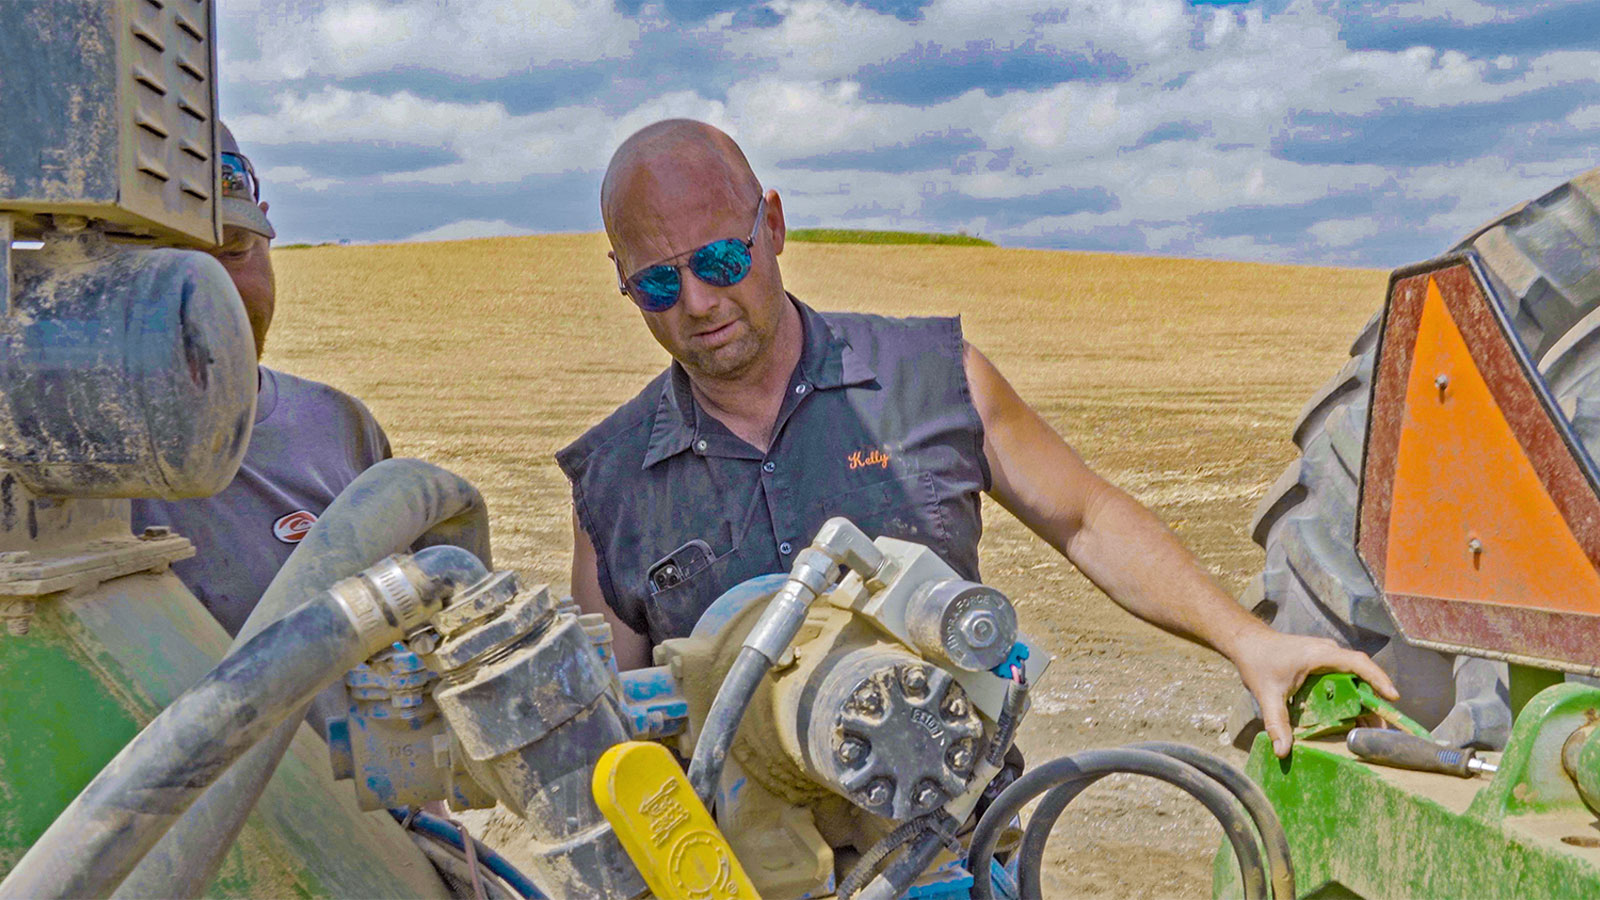 A bald man in sunglasses and a cut-off shirt looks over a piece of farm equipment